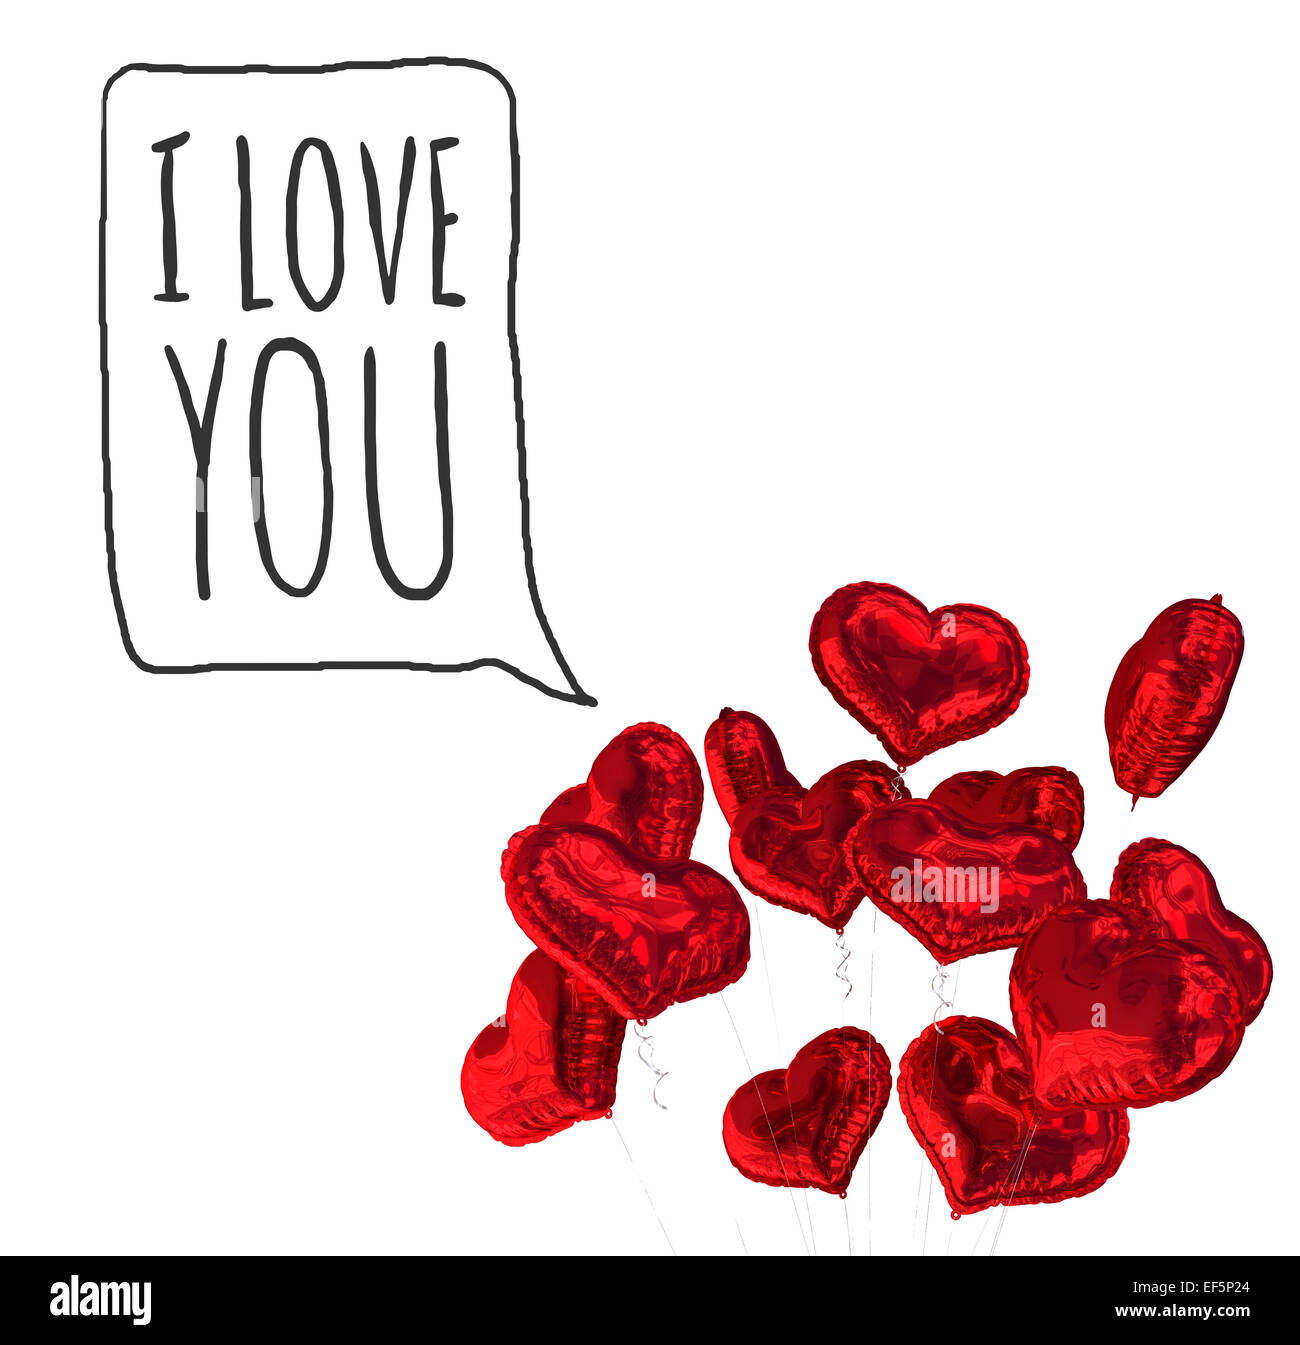 composite image of i love you stock image